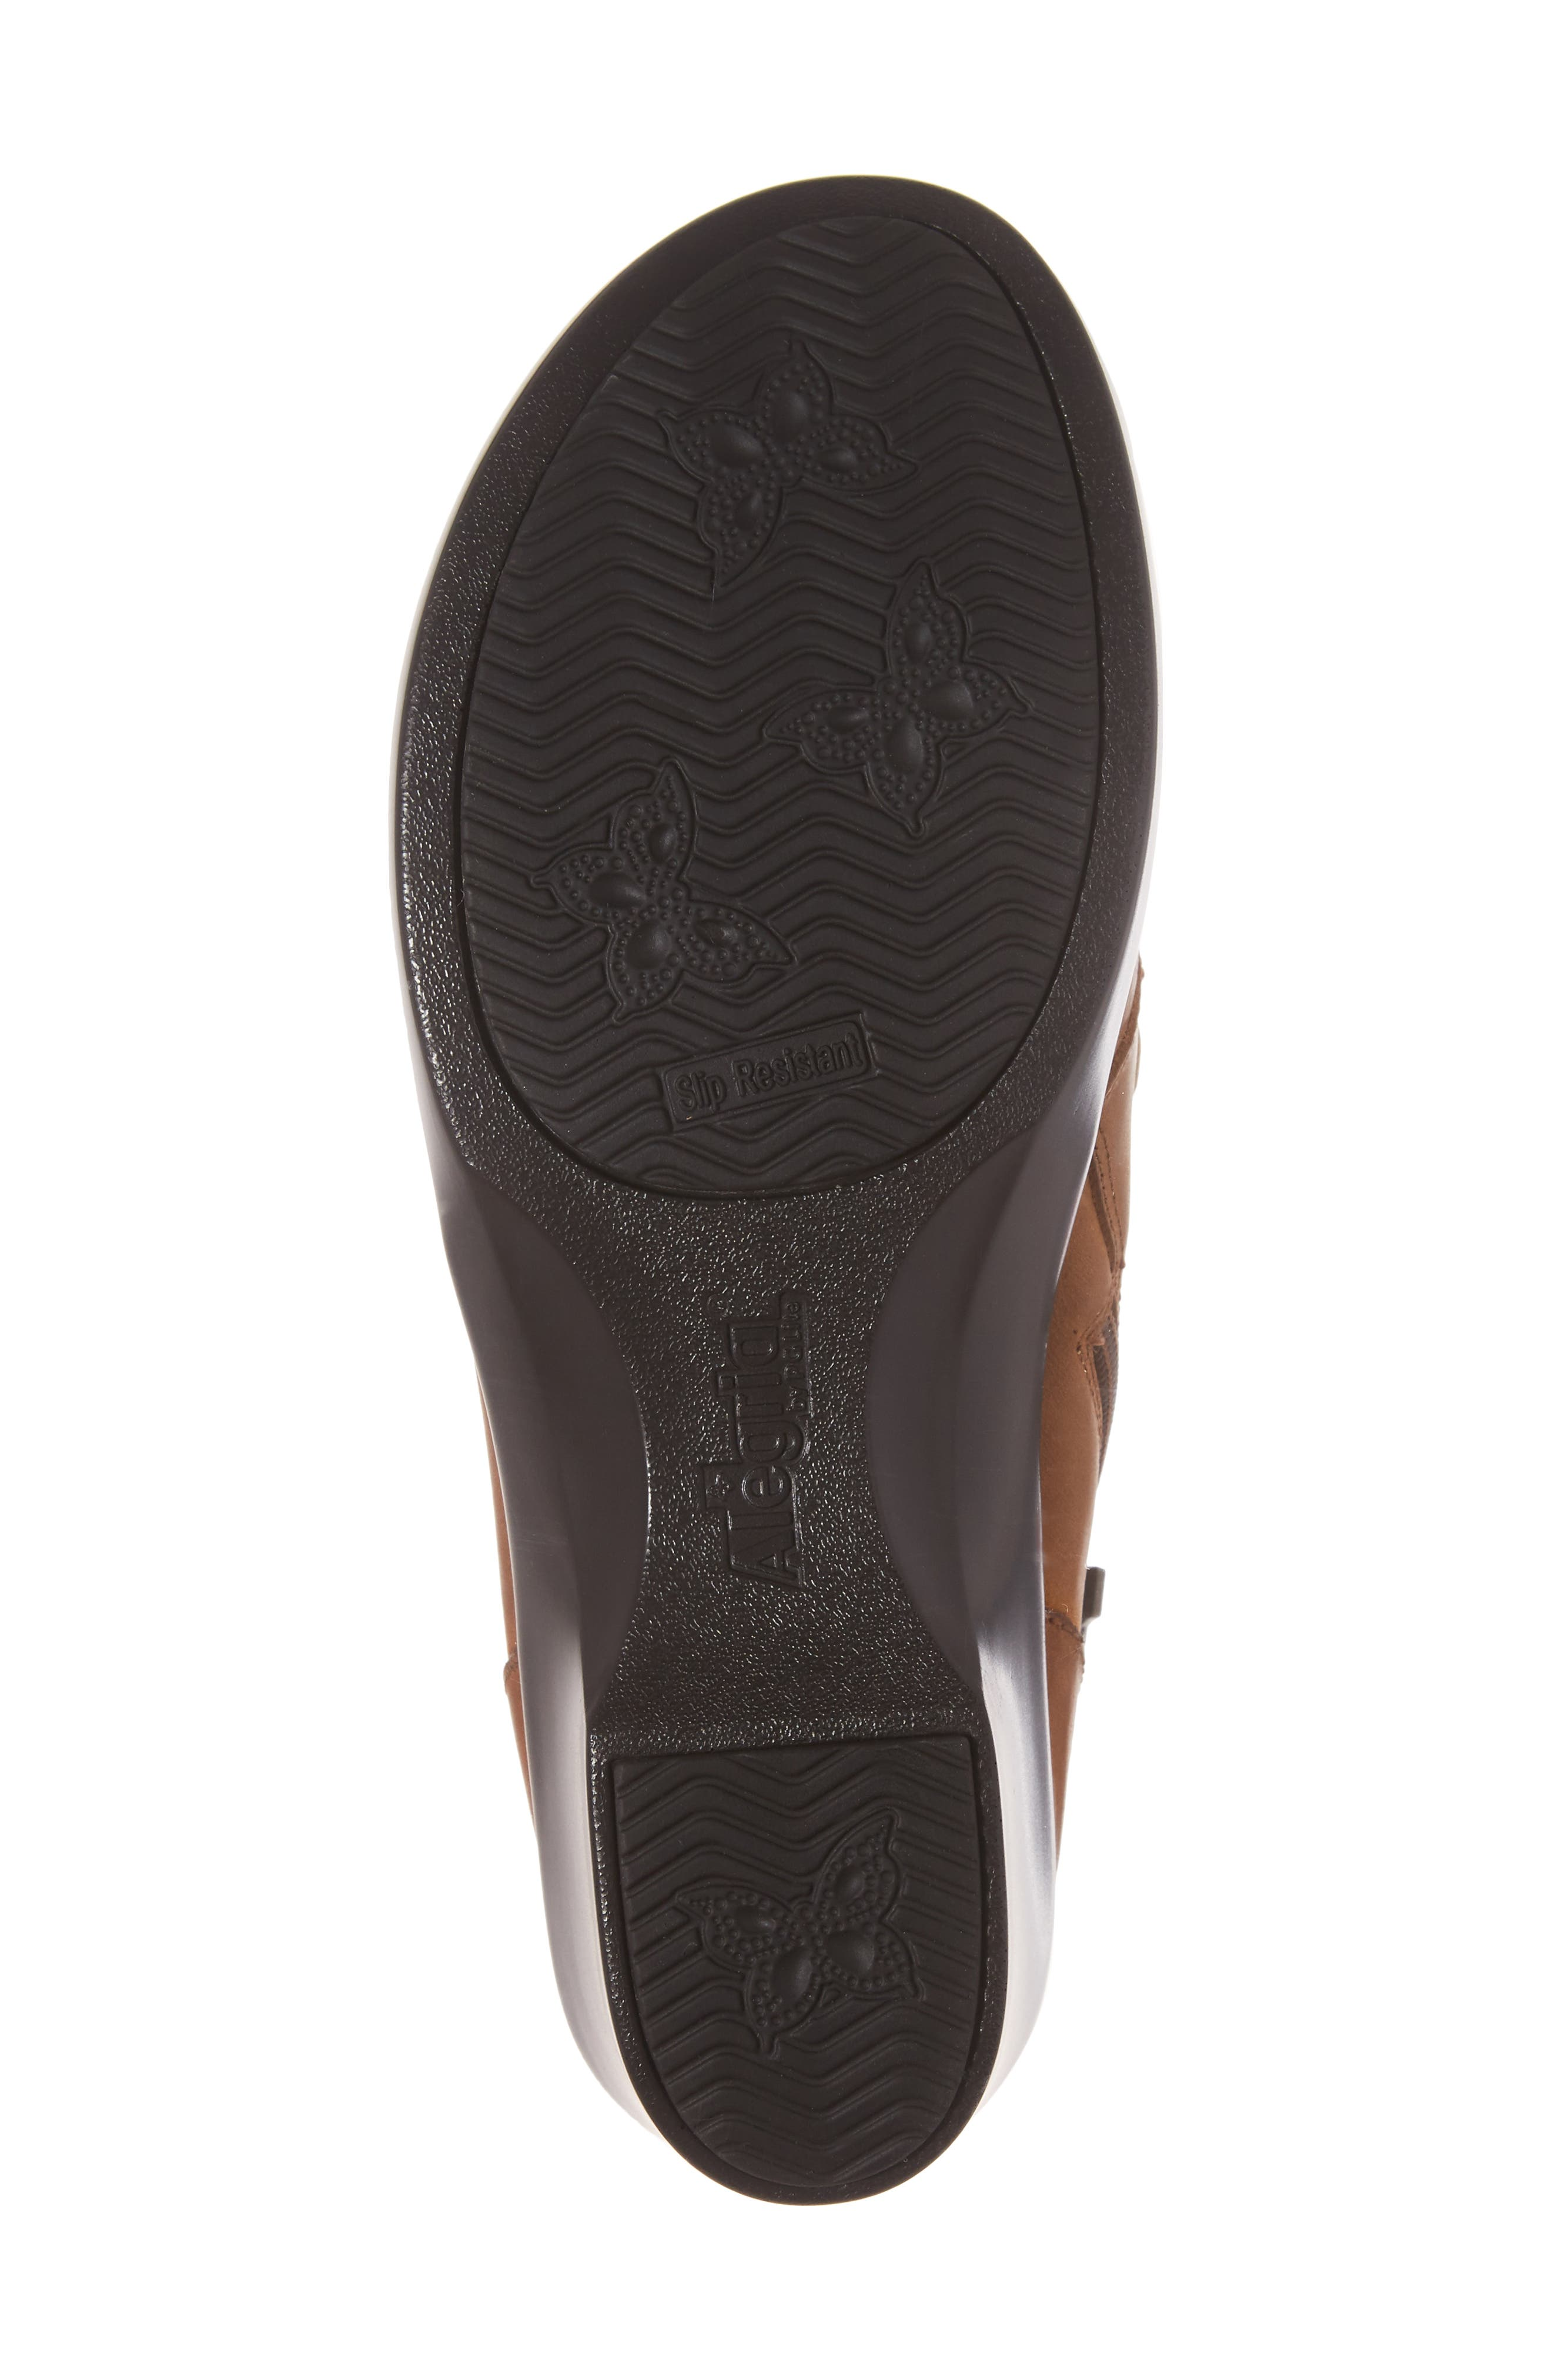 Indi Demi Wedge Bootie,                             Alternate thumbnail 6, color,                             Walnut Leather